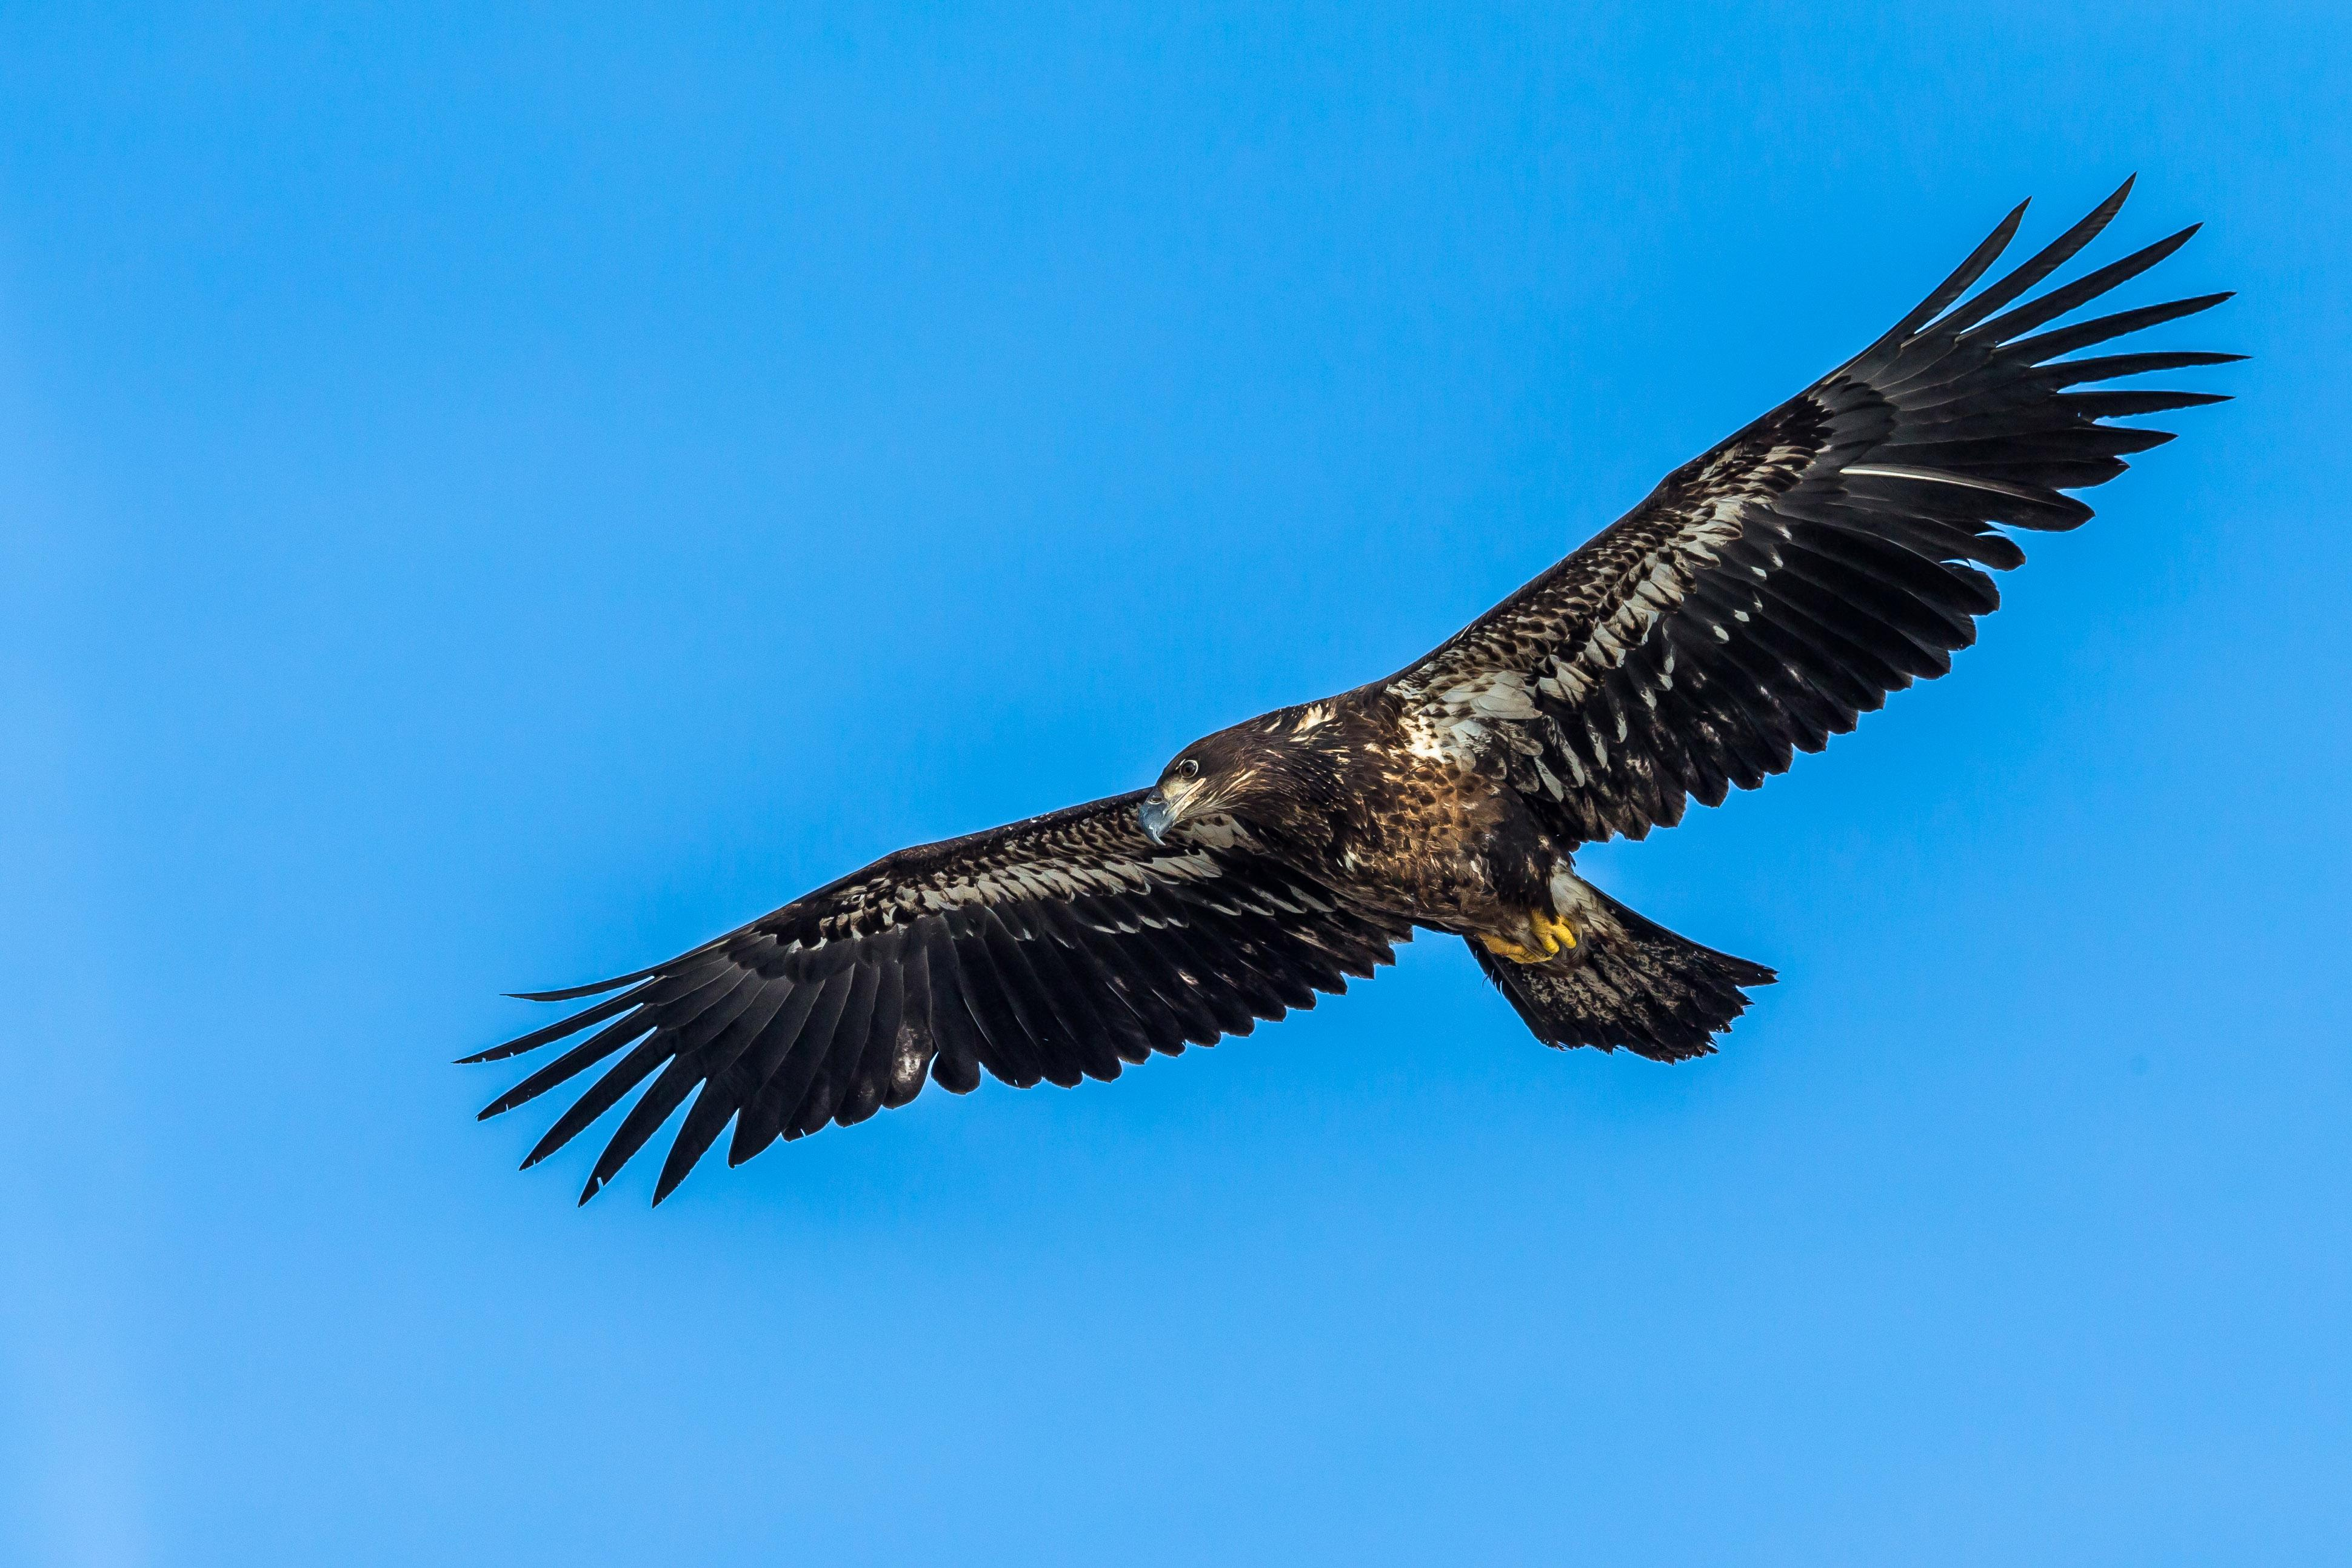 An immature bald eagle. It will get its distinctive white feathers at age 4 or 5. (Photo credit: Josh Feeney)